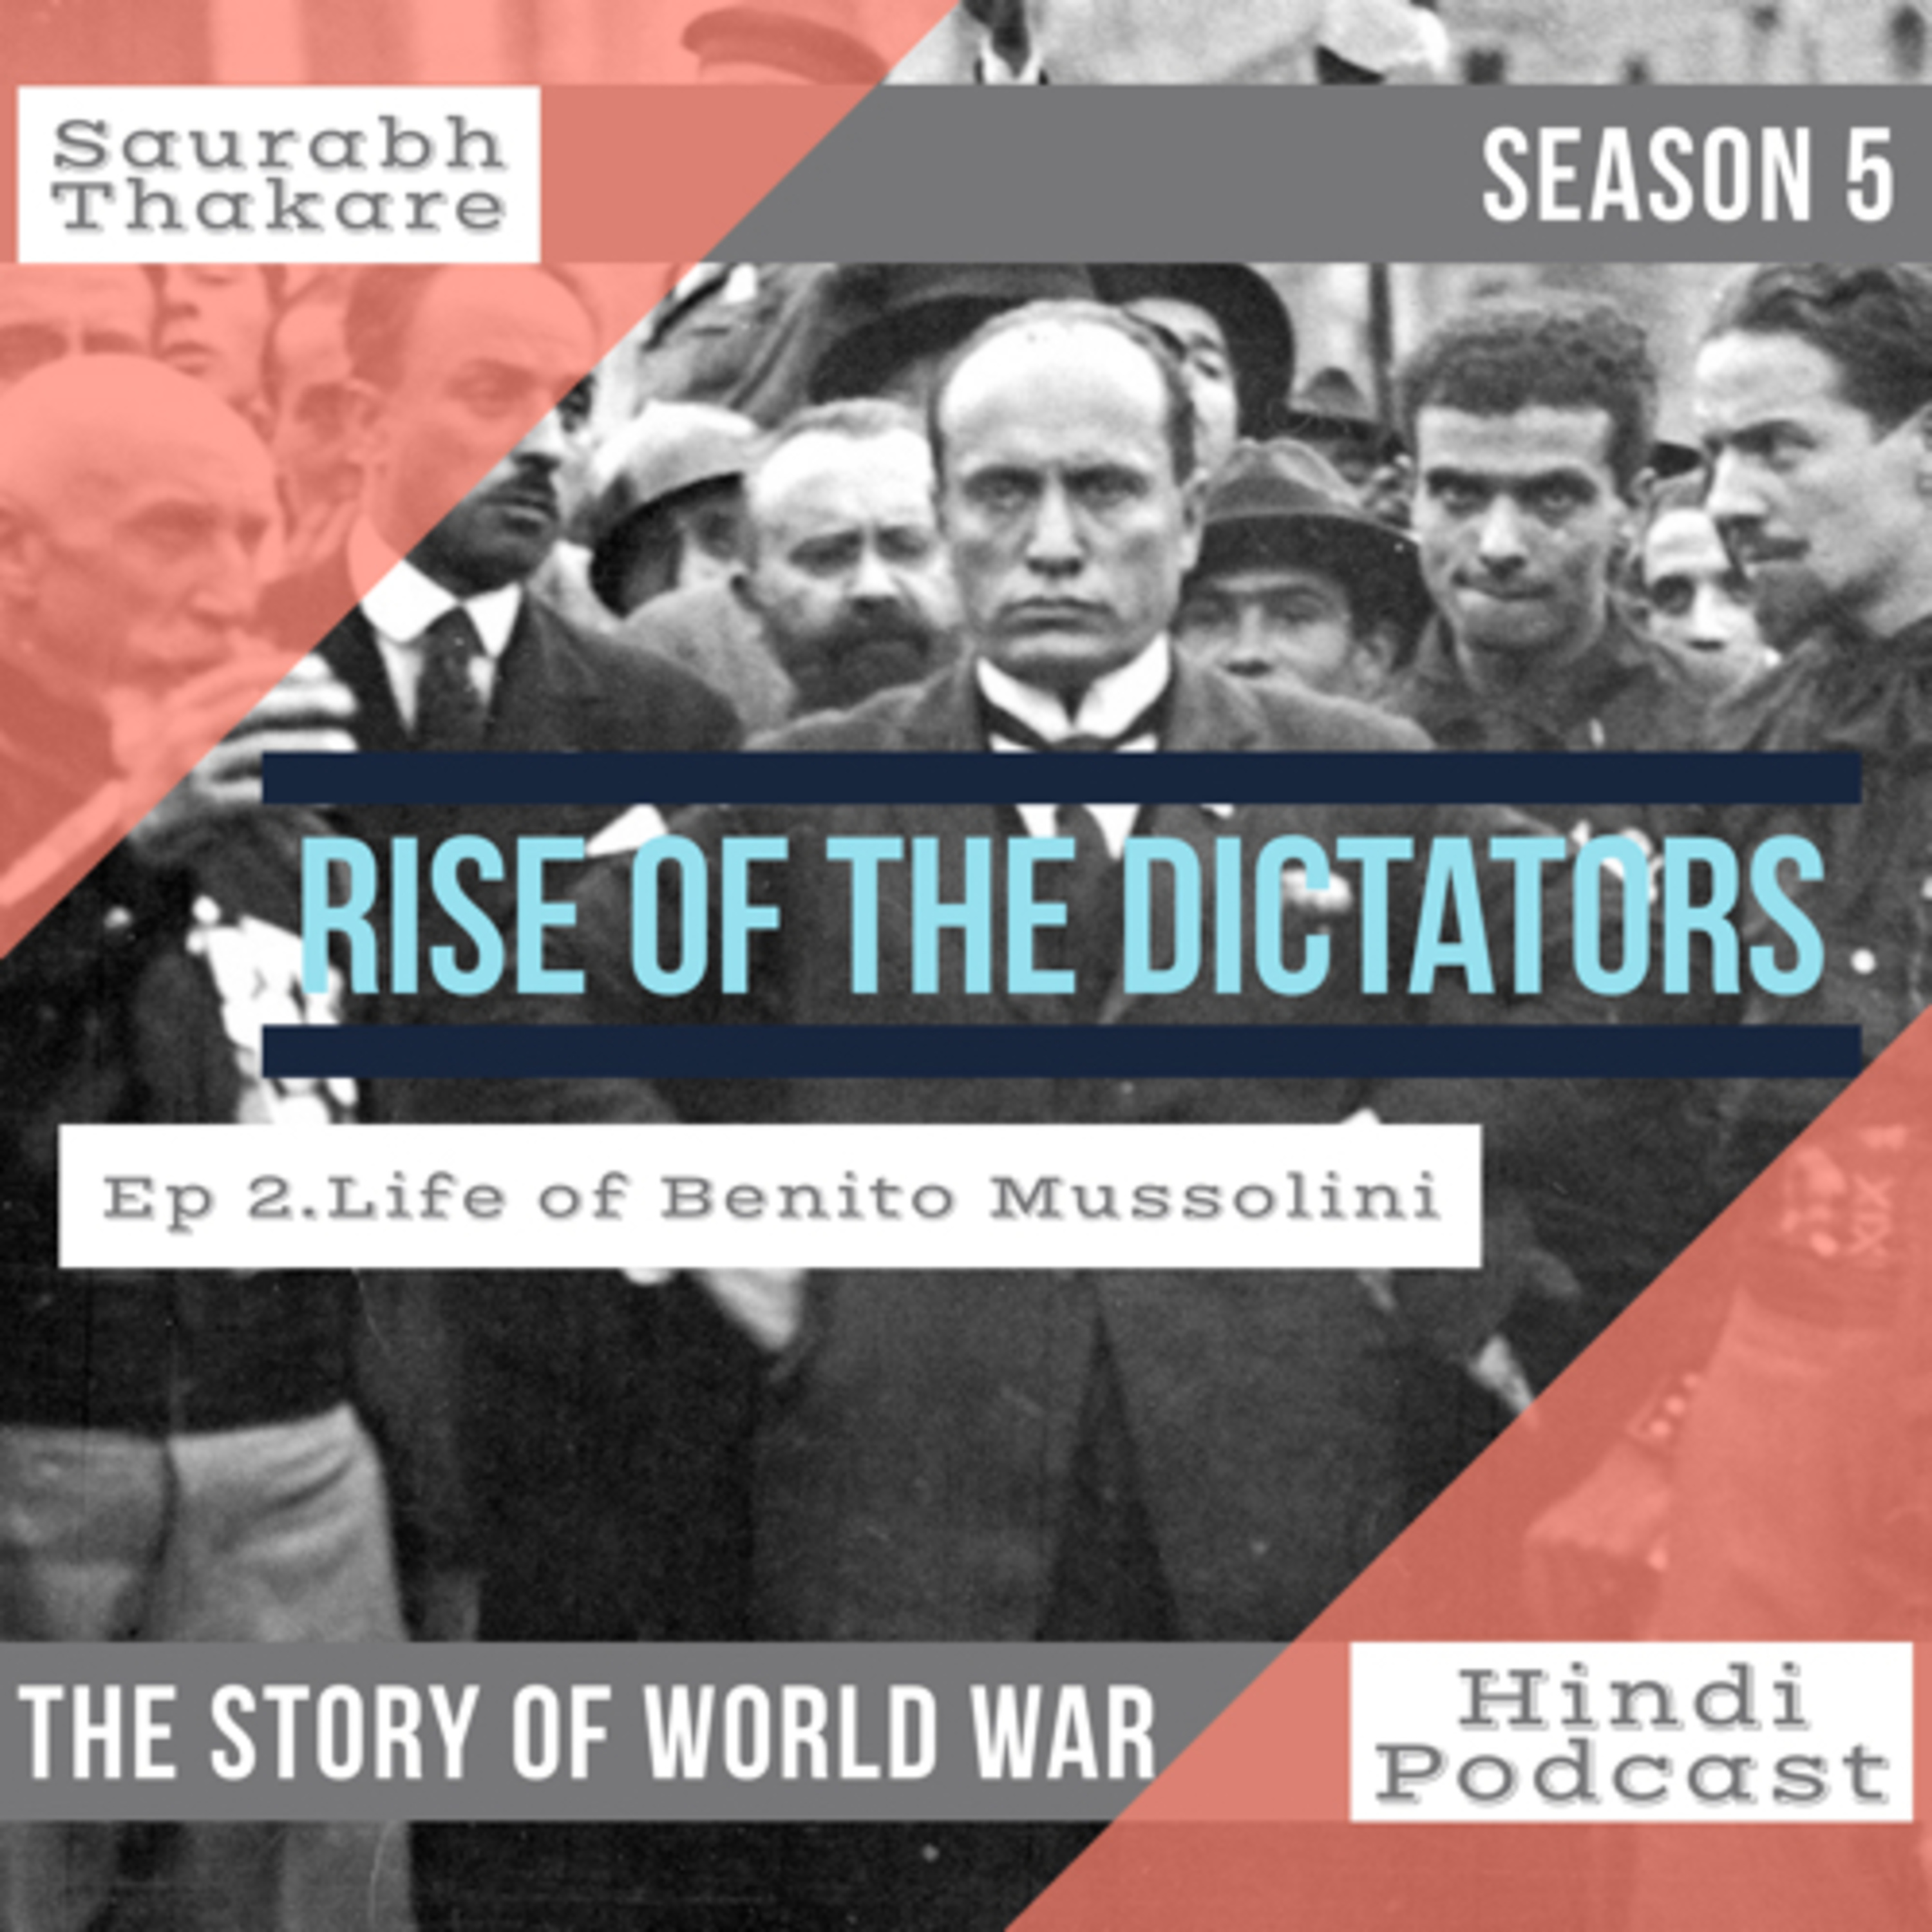 #39 RISE OF THE DICTATORS |Ep 18. life of Benito Mussolini